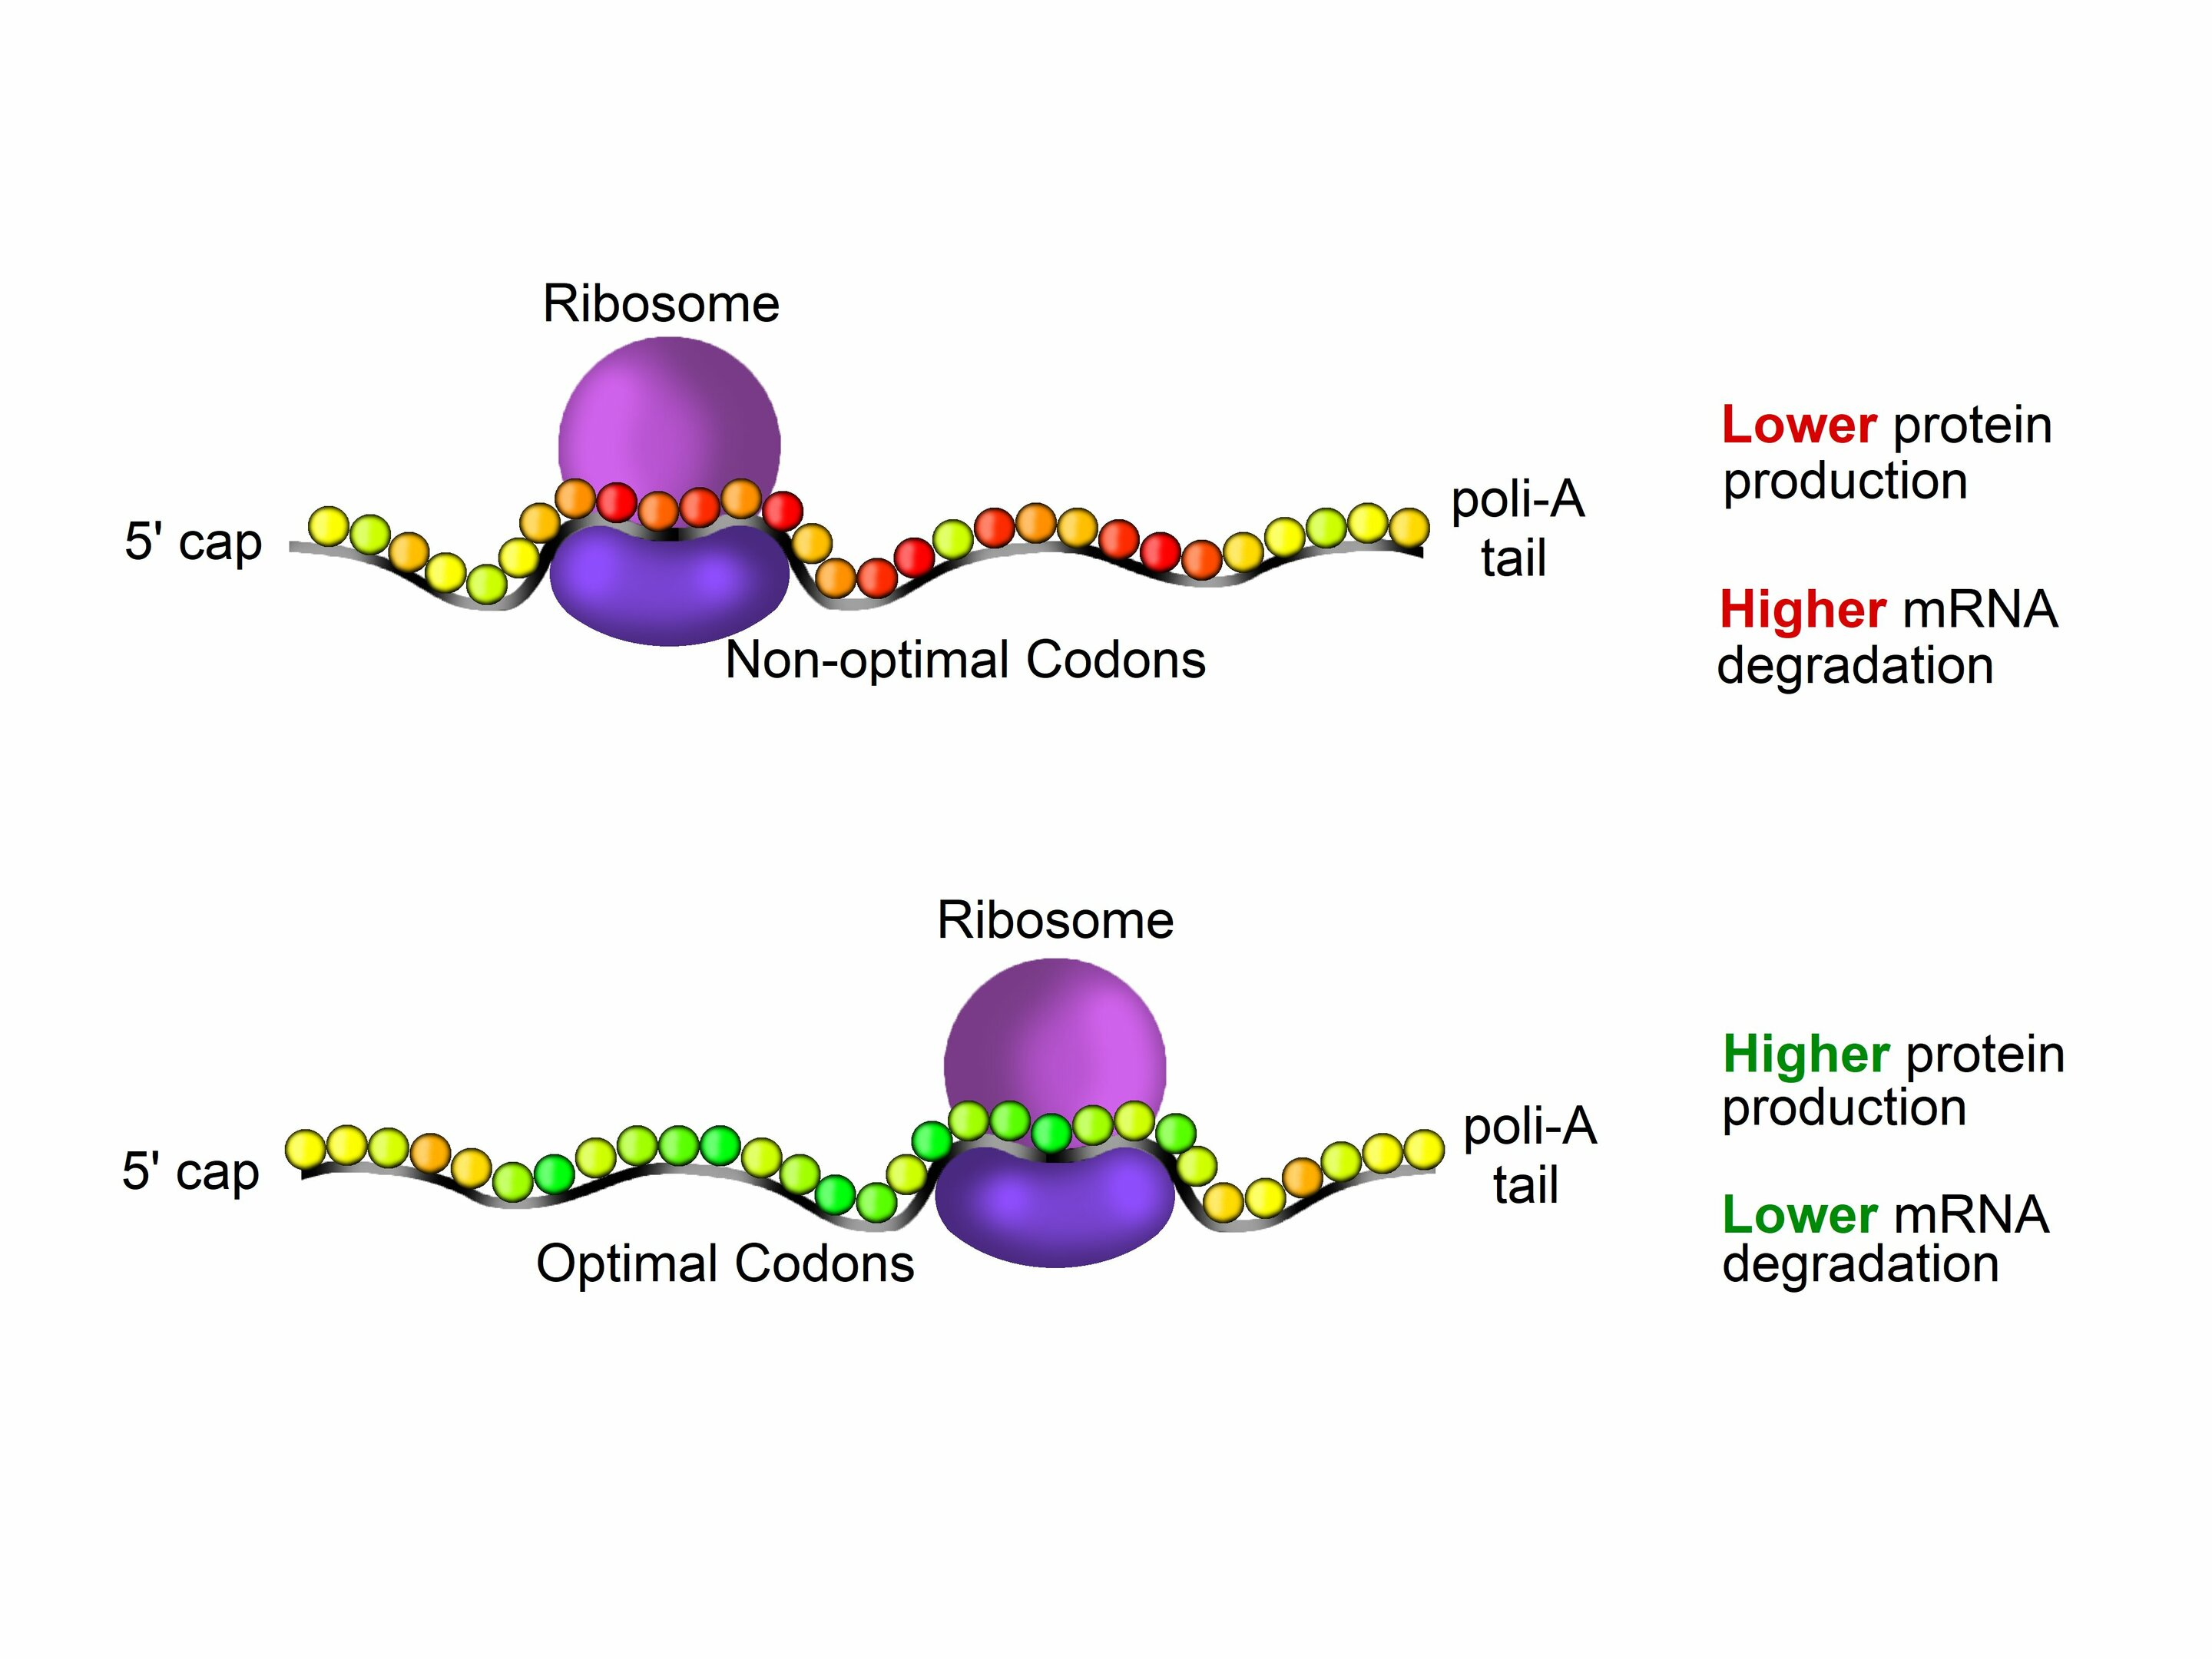 Protein production efficiency can be predicted by gene sequence